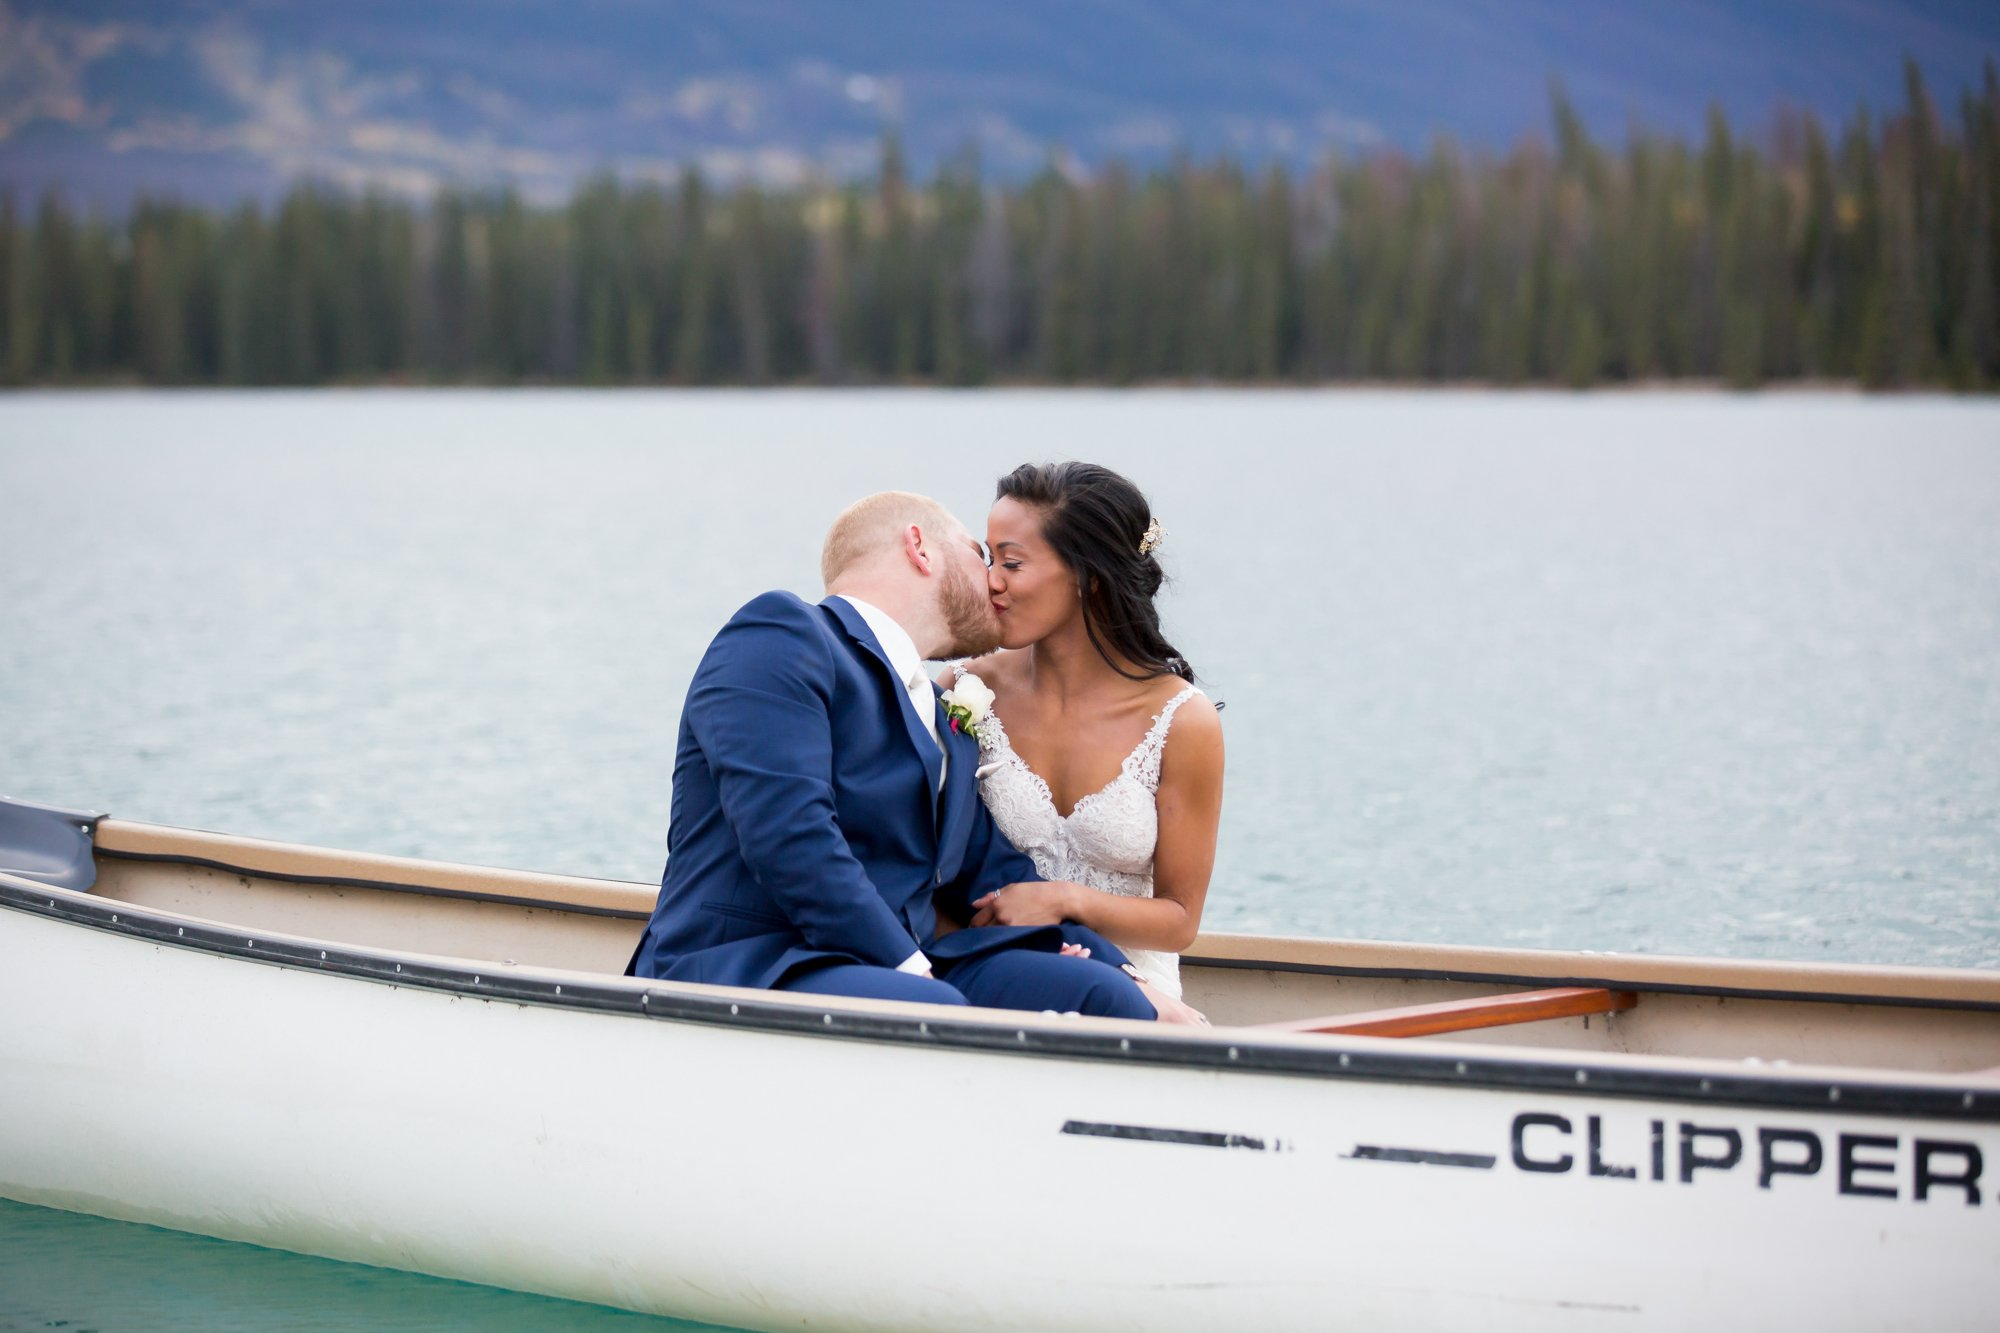 A bride and groom kissing in a canoe